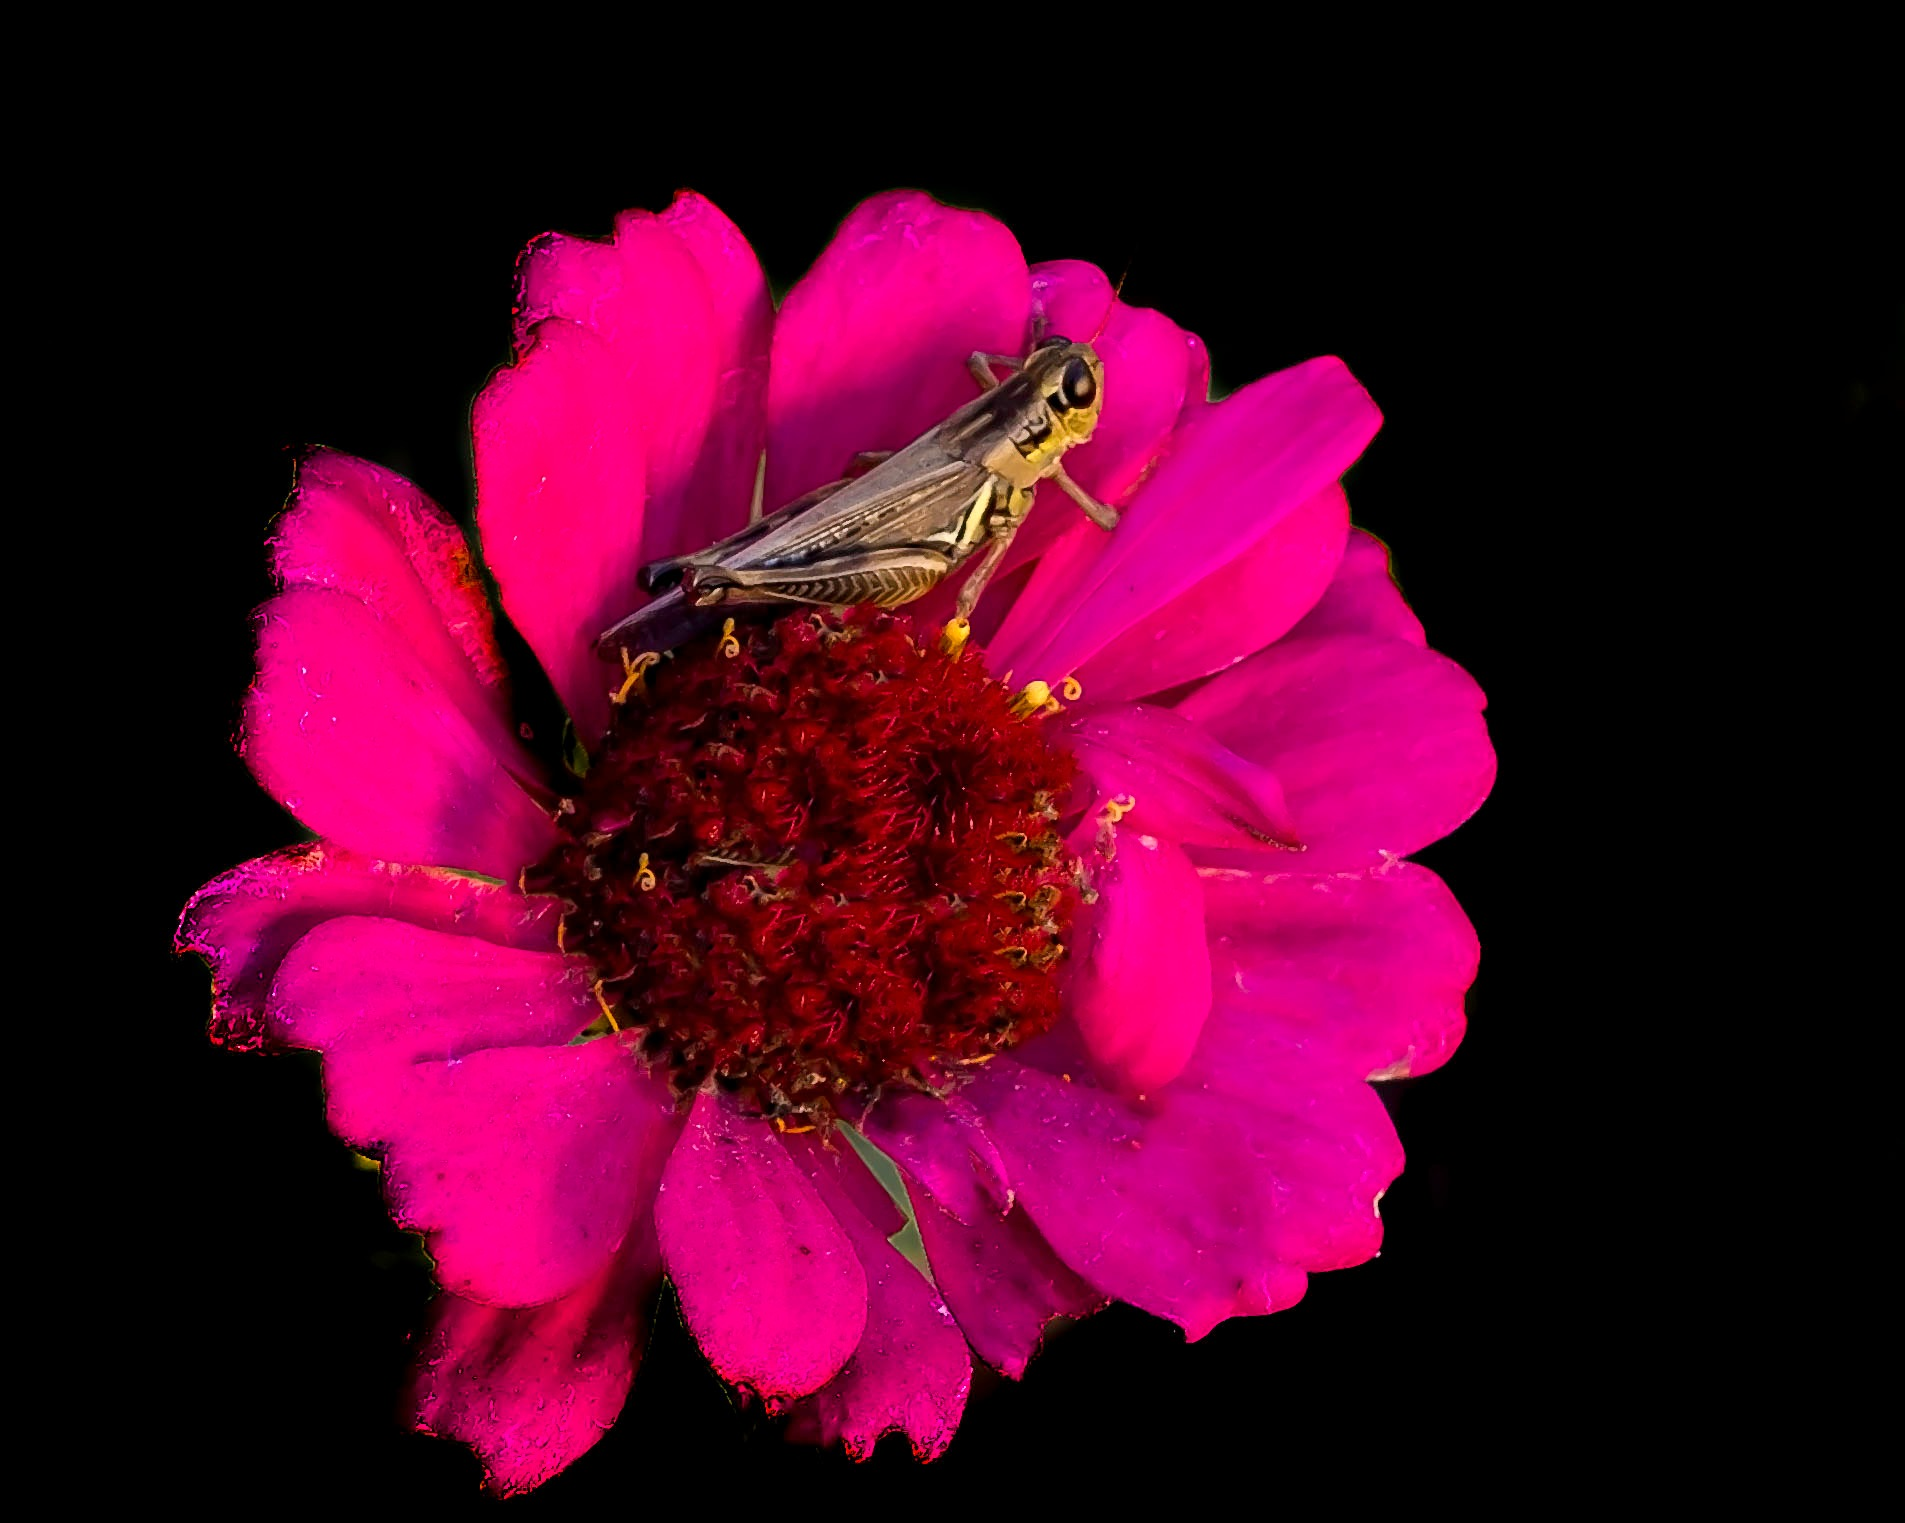 Weedhopper Autumn Blossom by Edward Brown